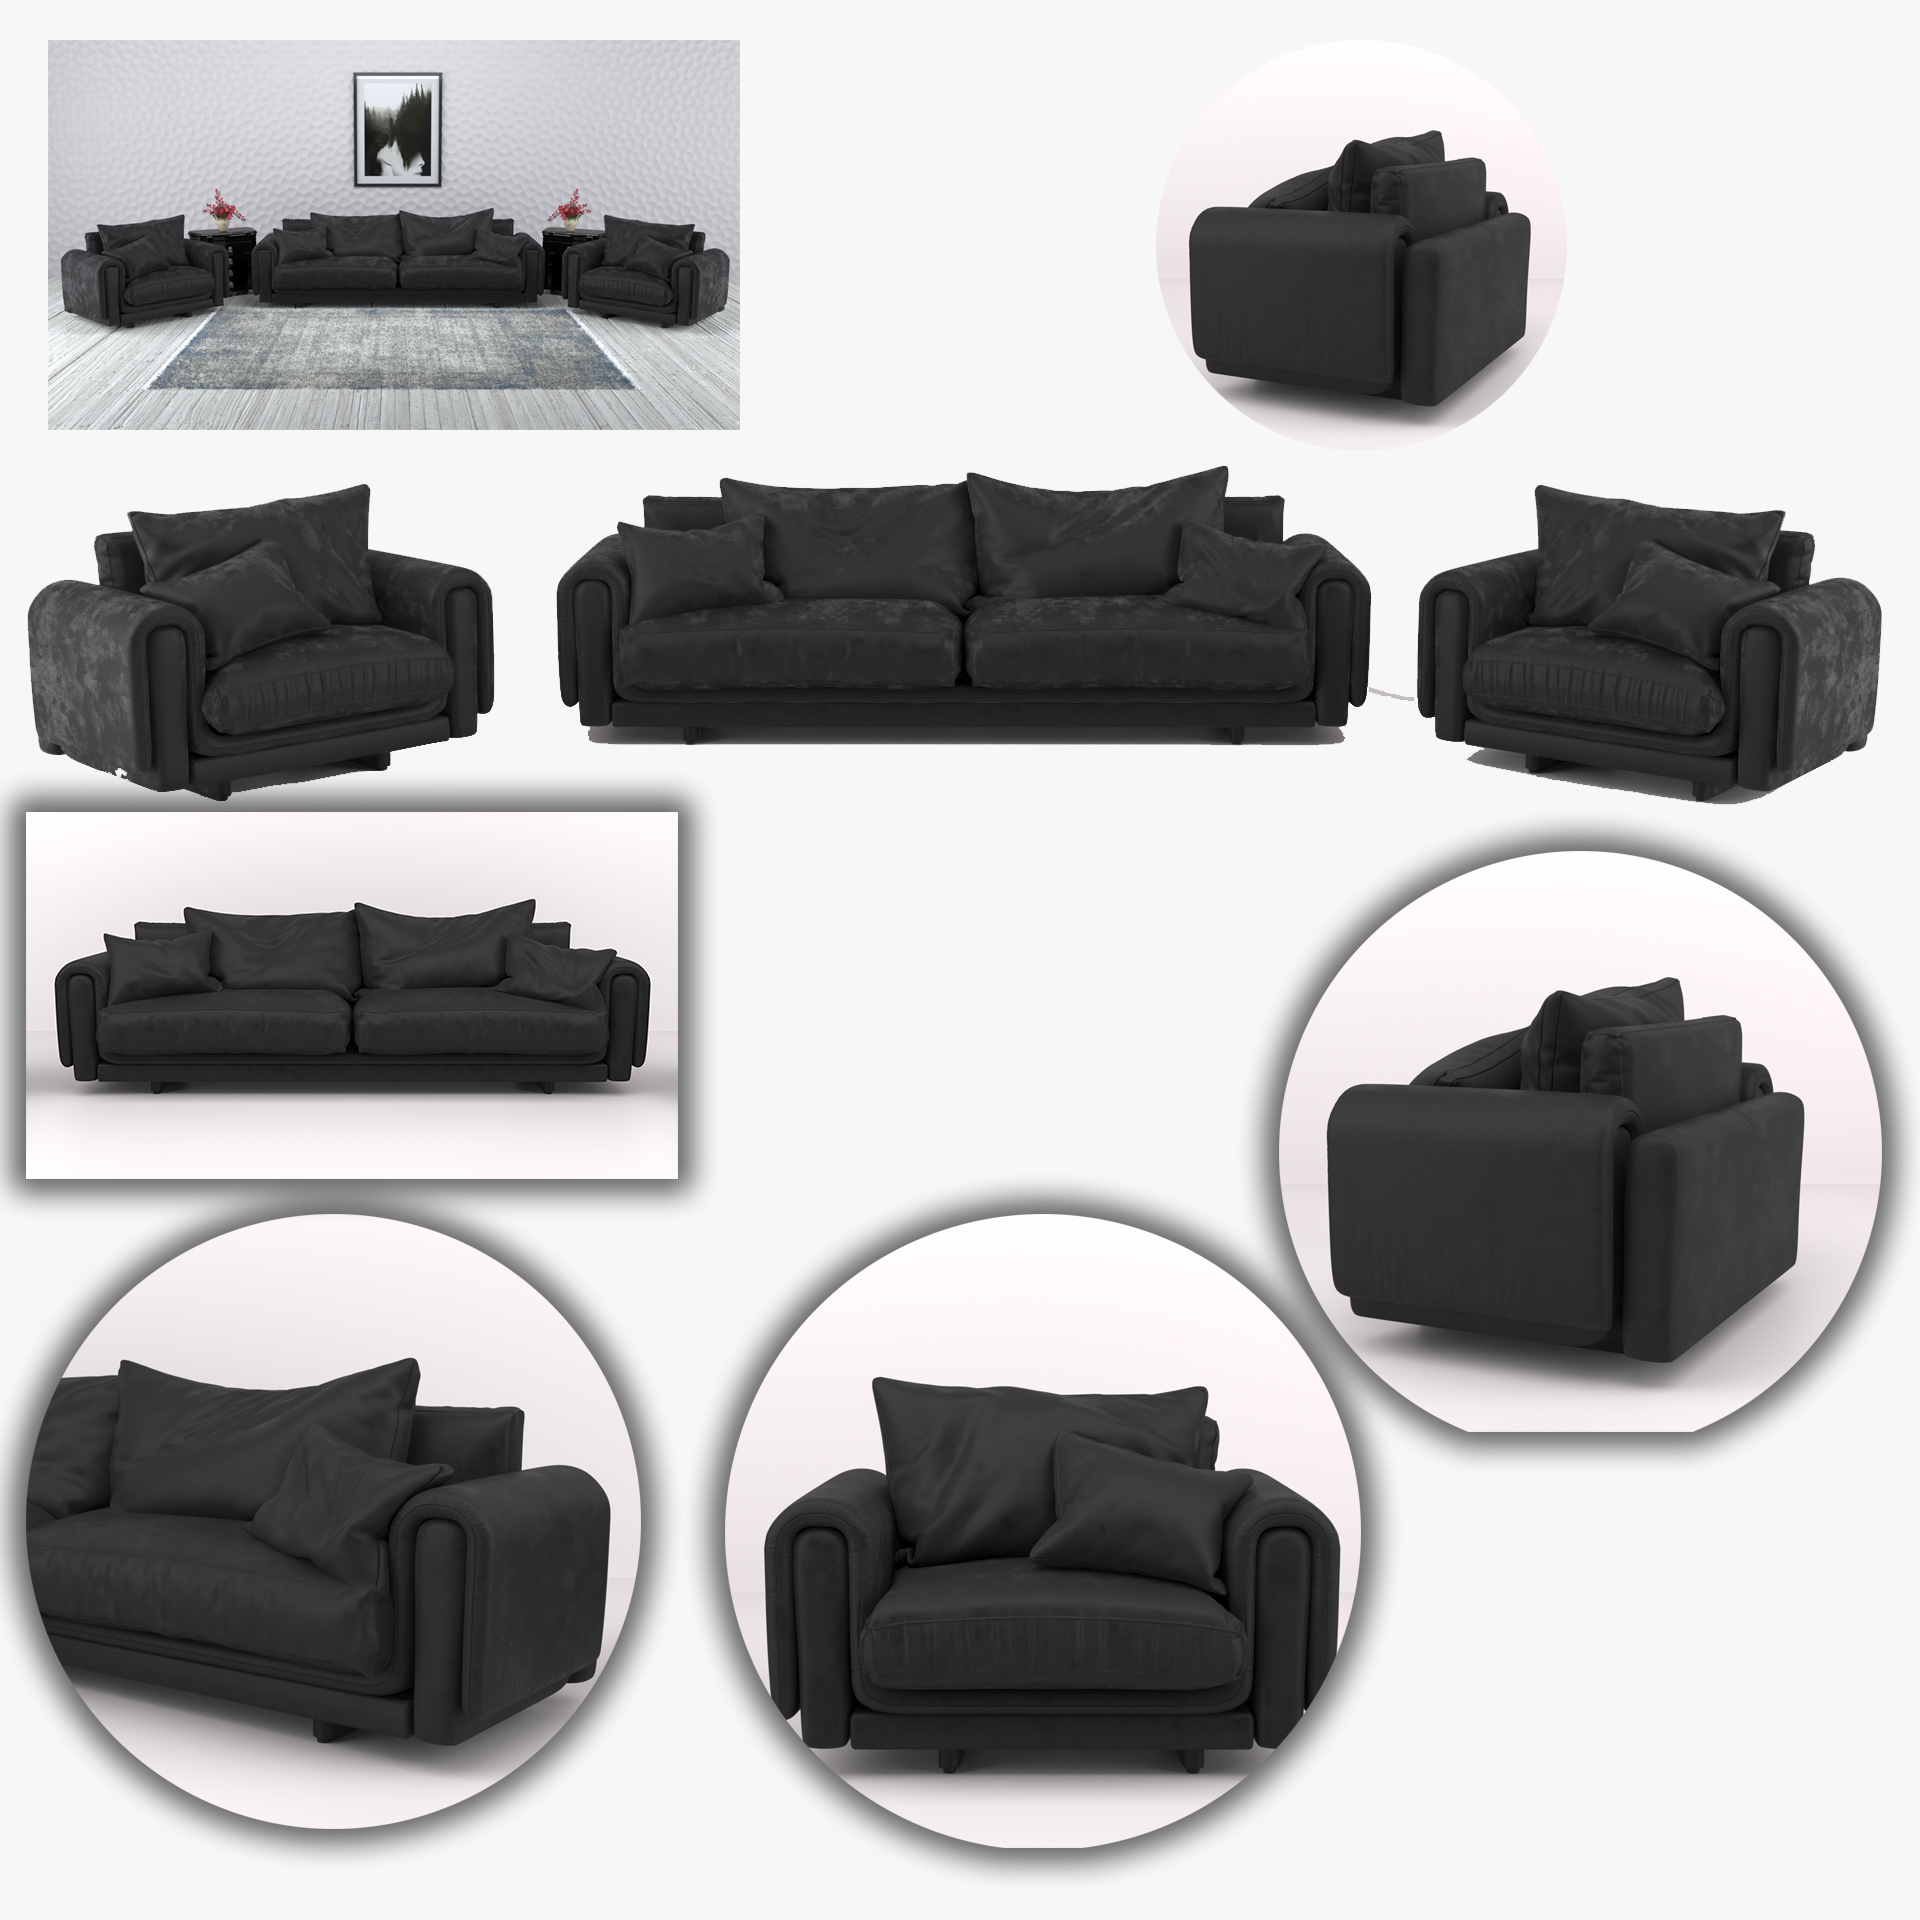 Black leather sofa and armchair furniture set